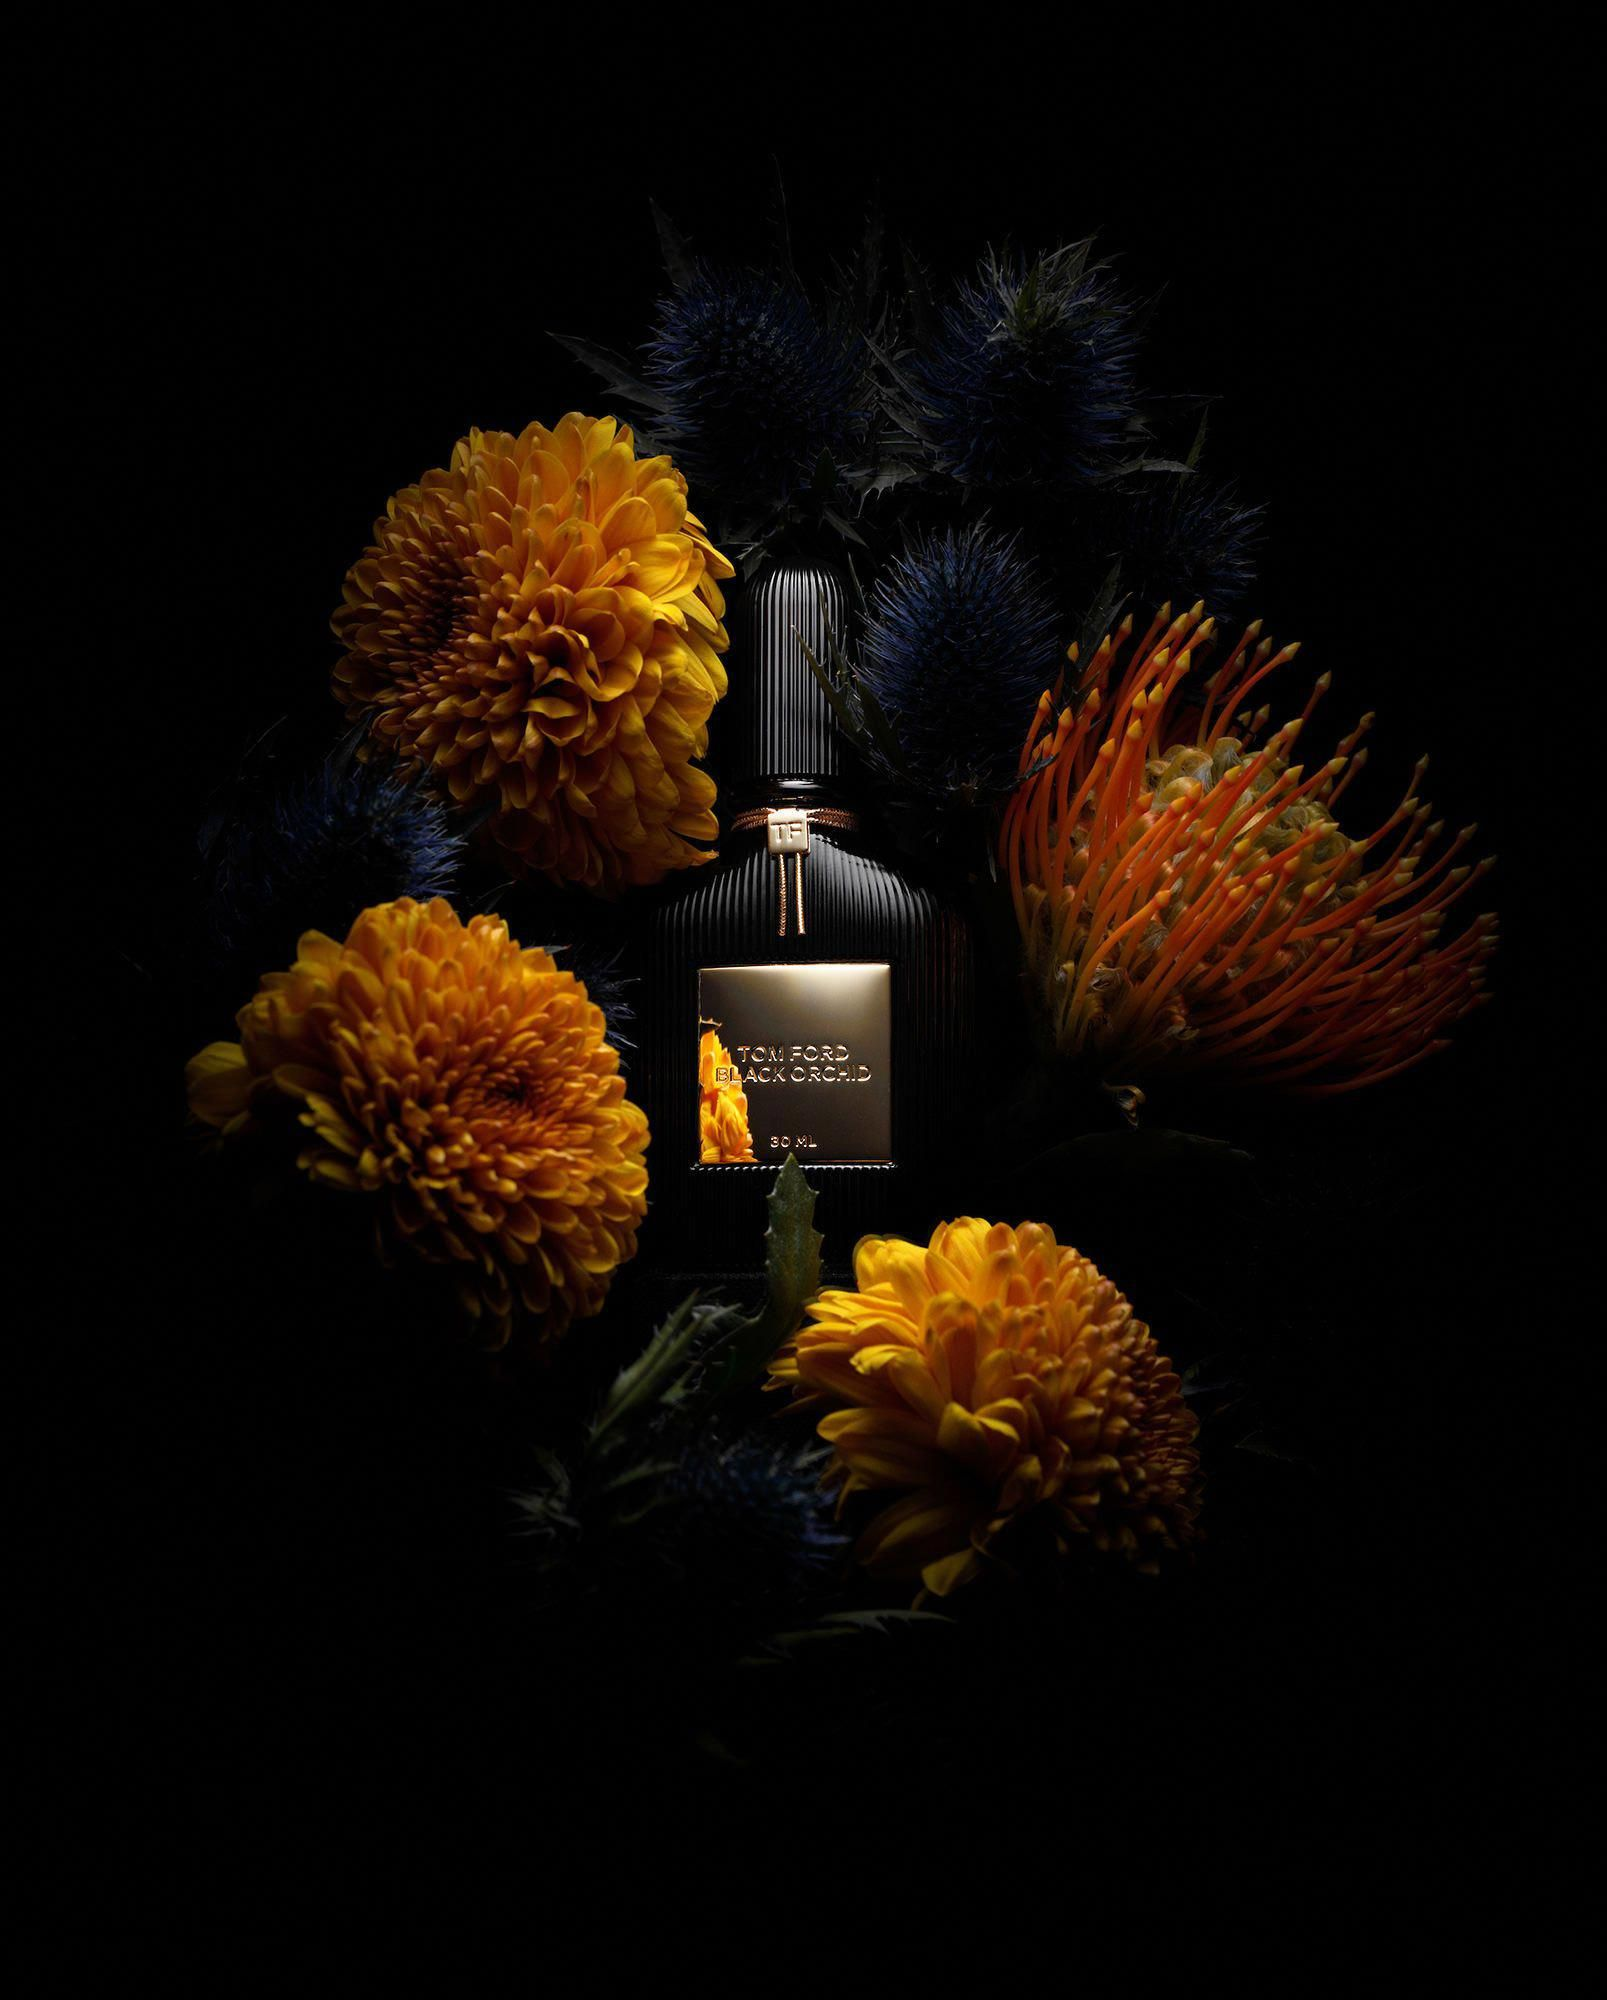 Fragrance Dark Flower Still Life Photography Photographed By